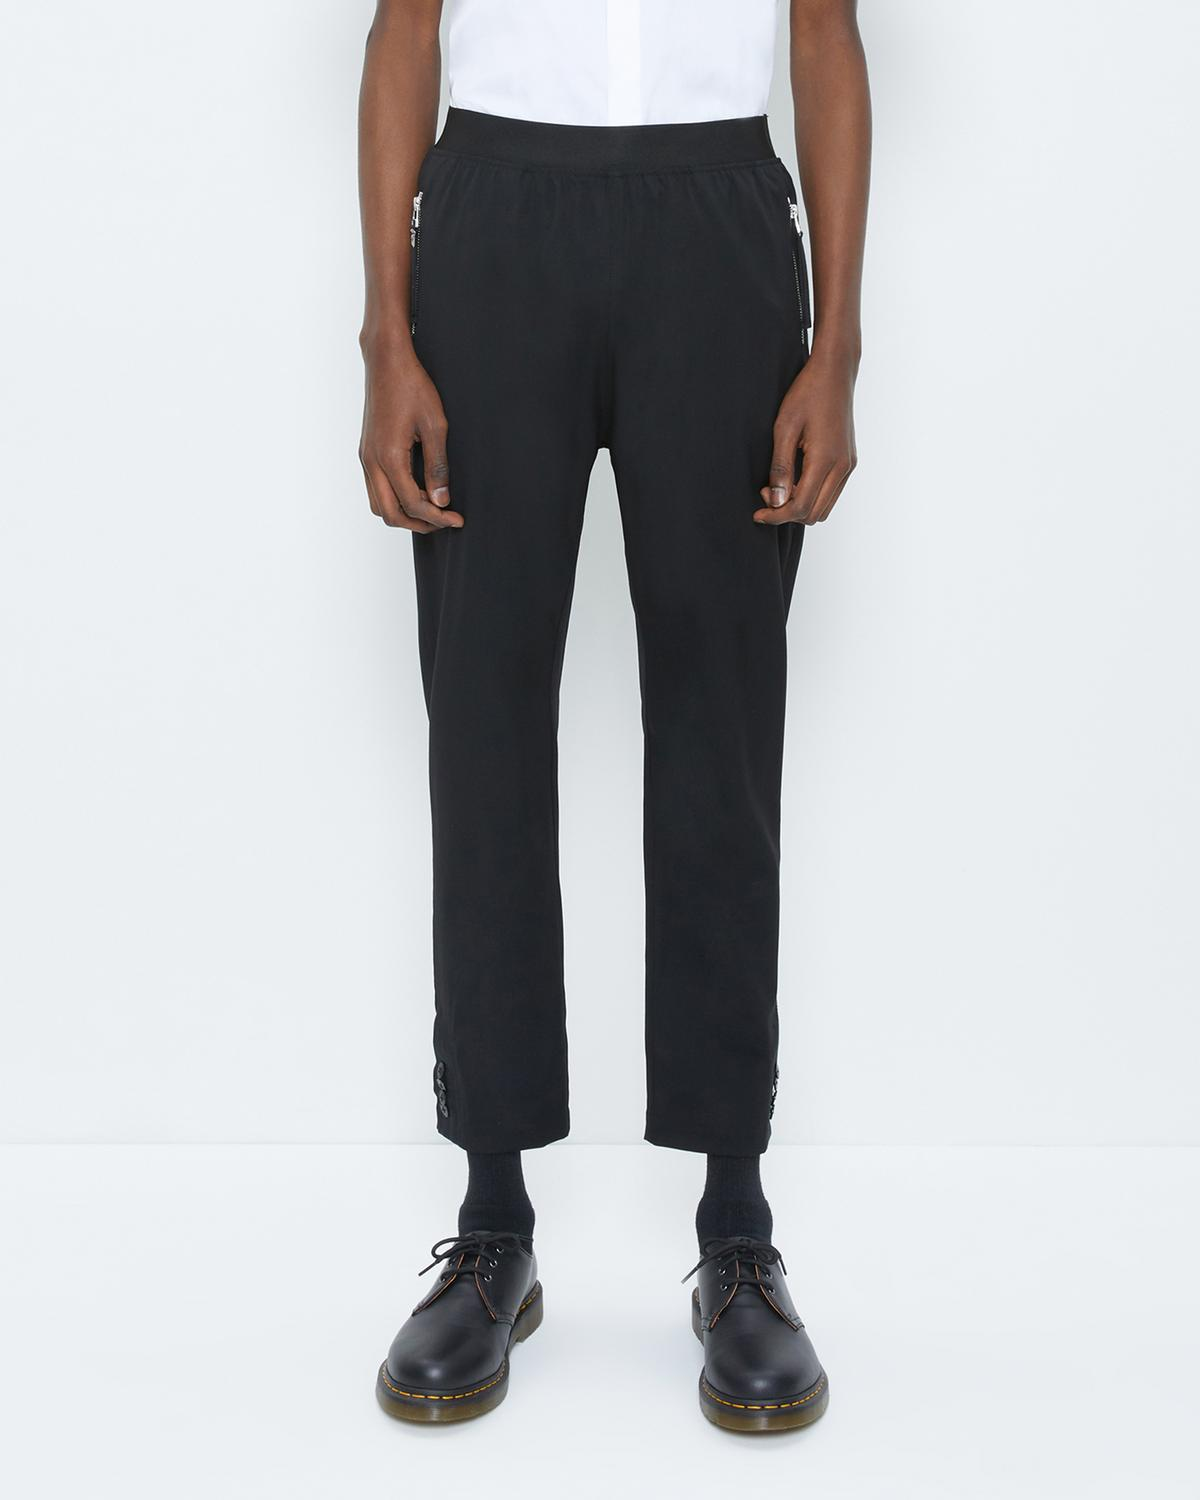 SUITING TRACK PANT